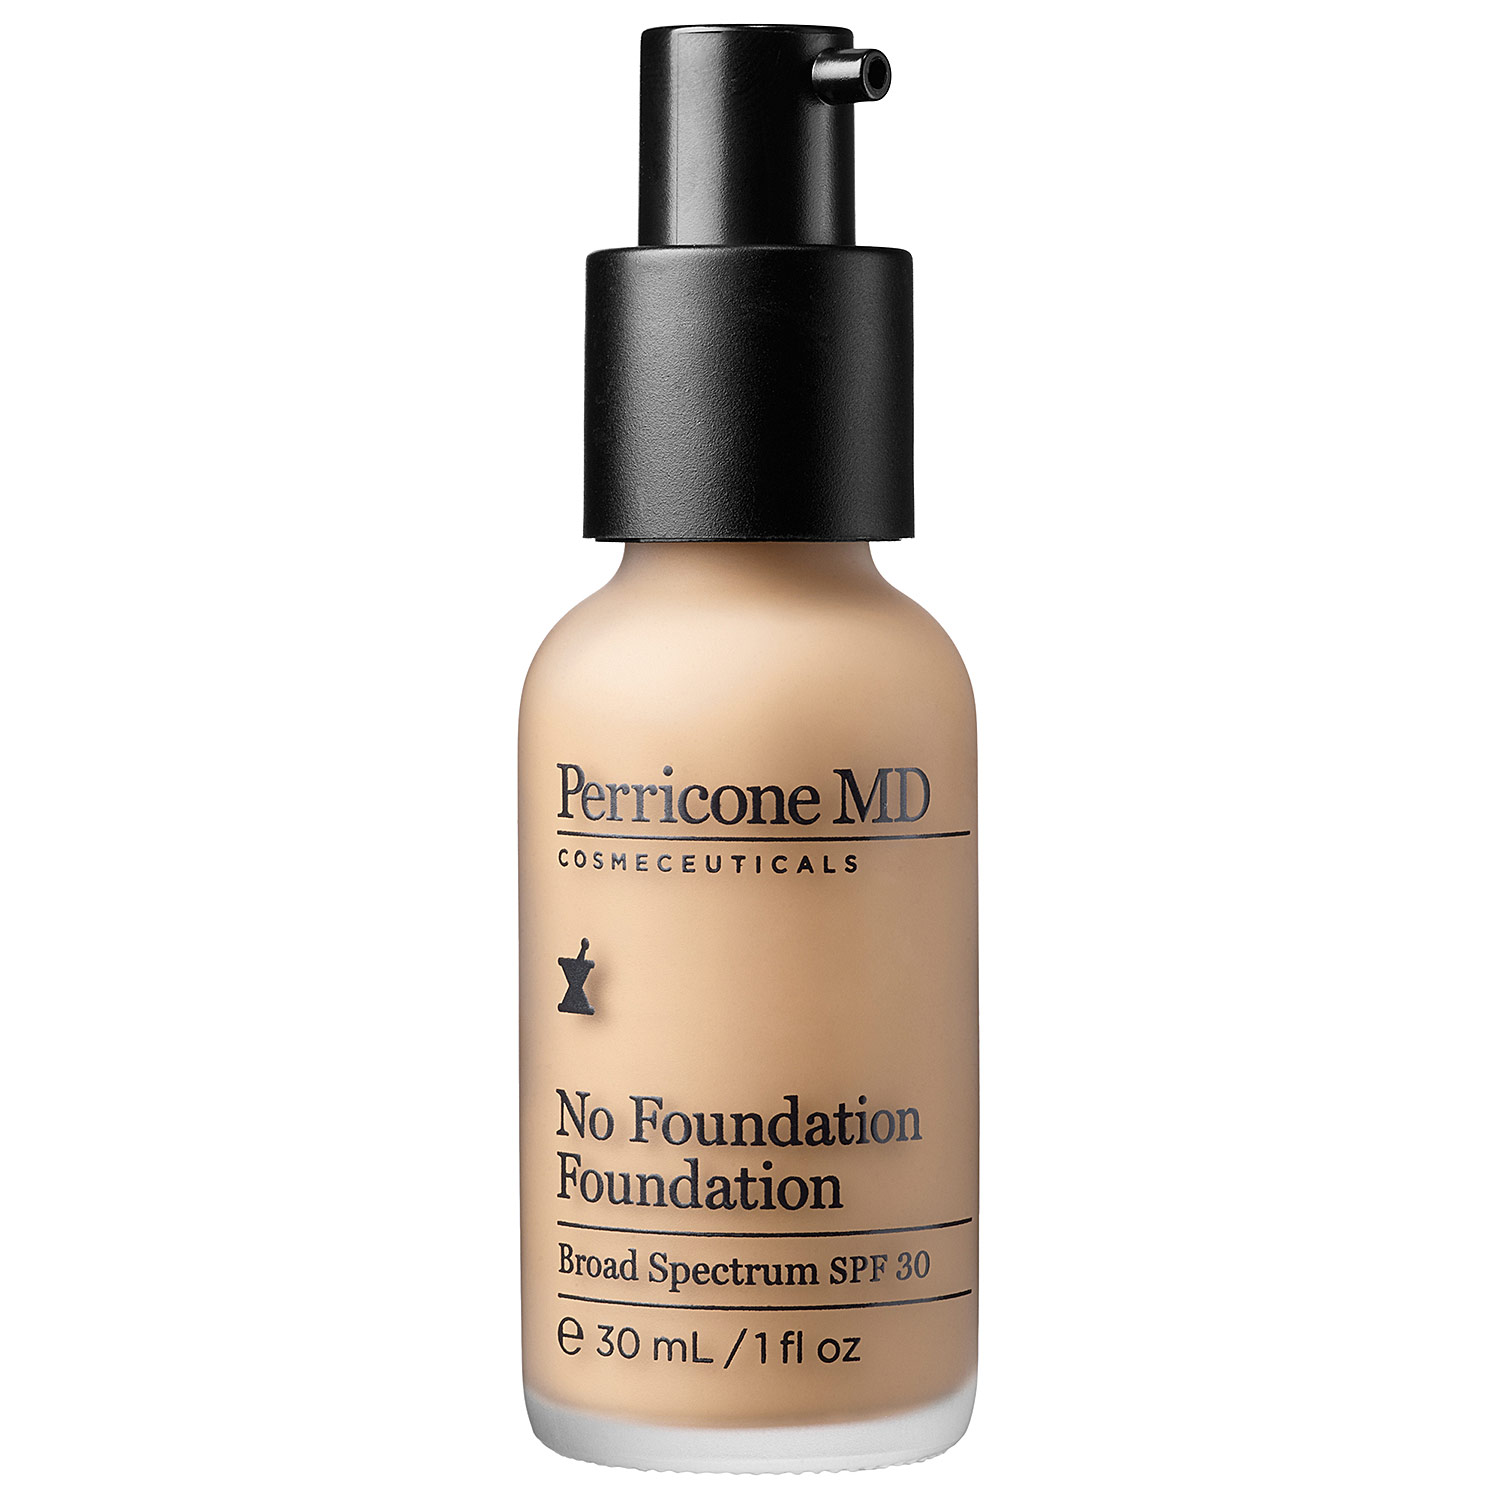 No Makeup Foundation Broad Spectrum SPF 20 Best makeup